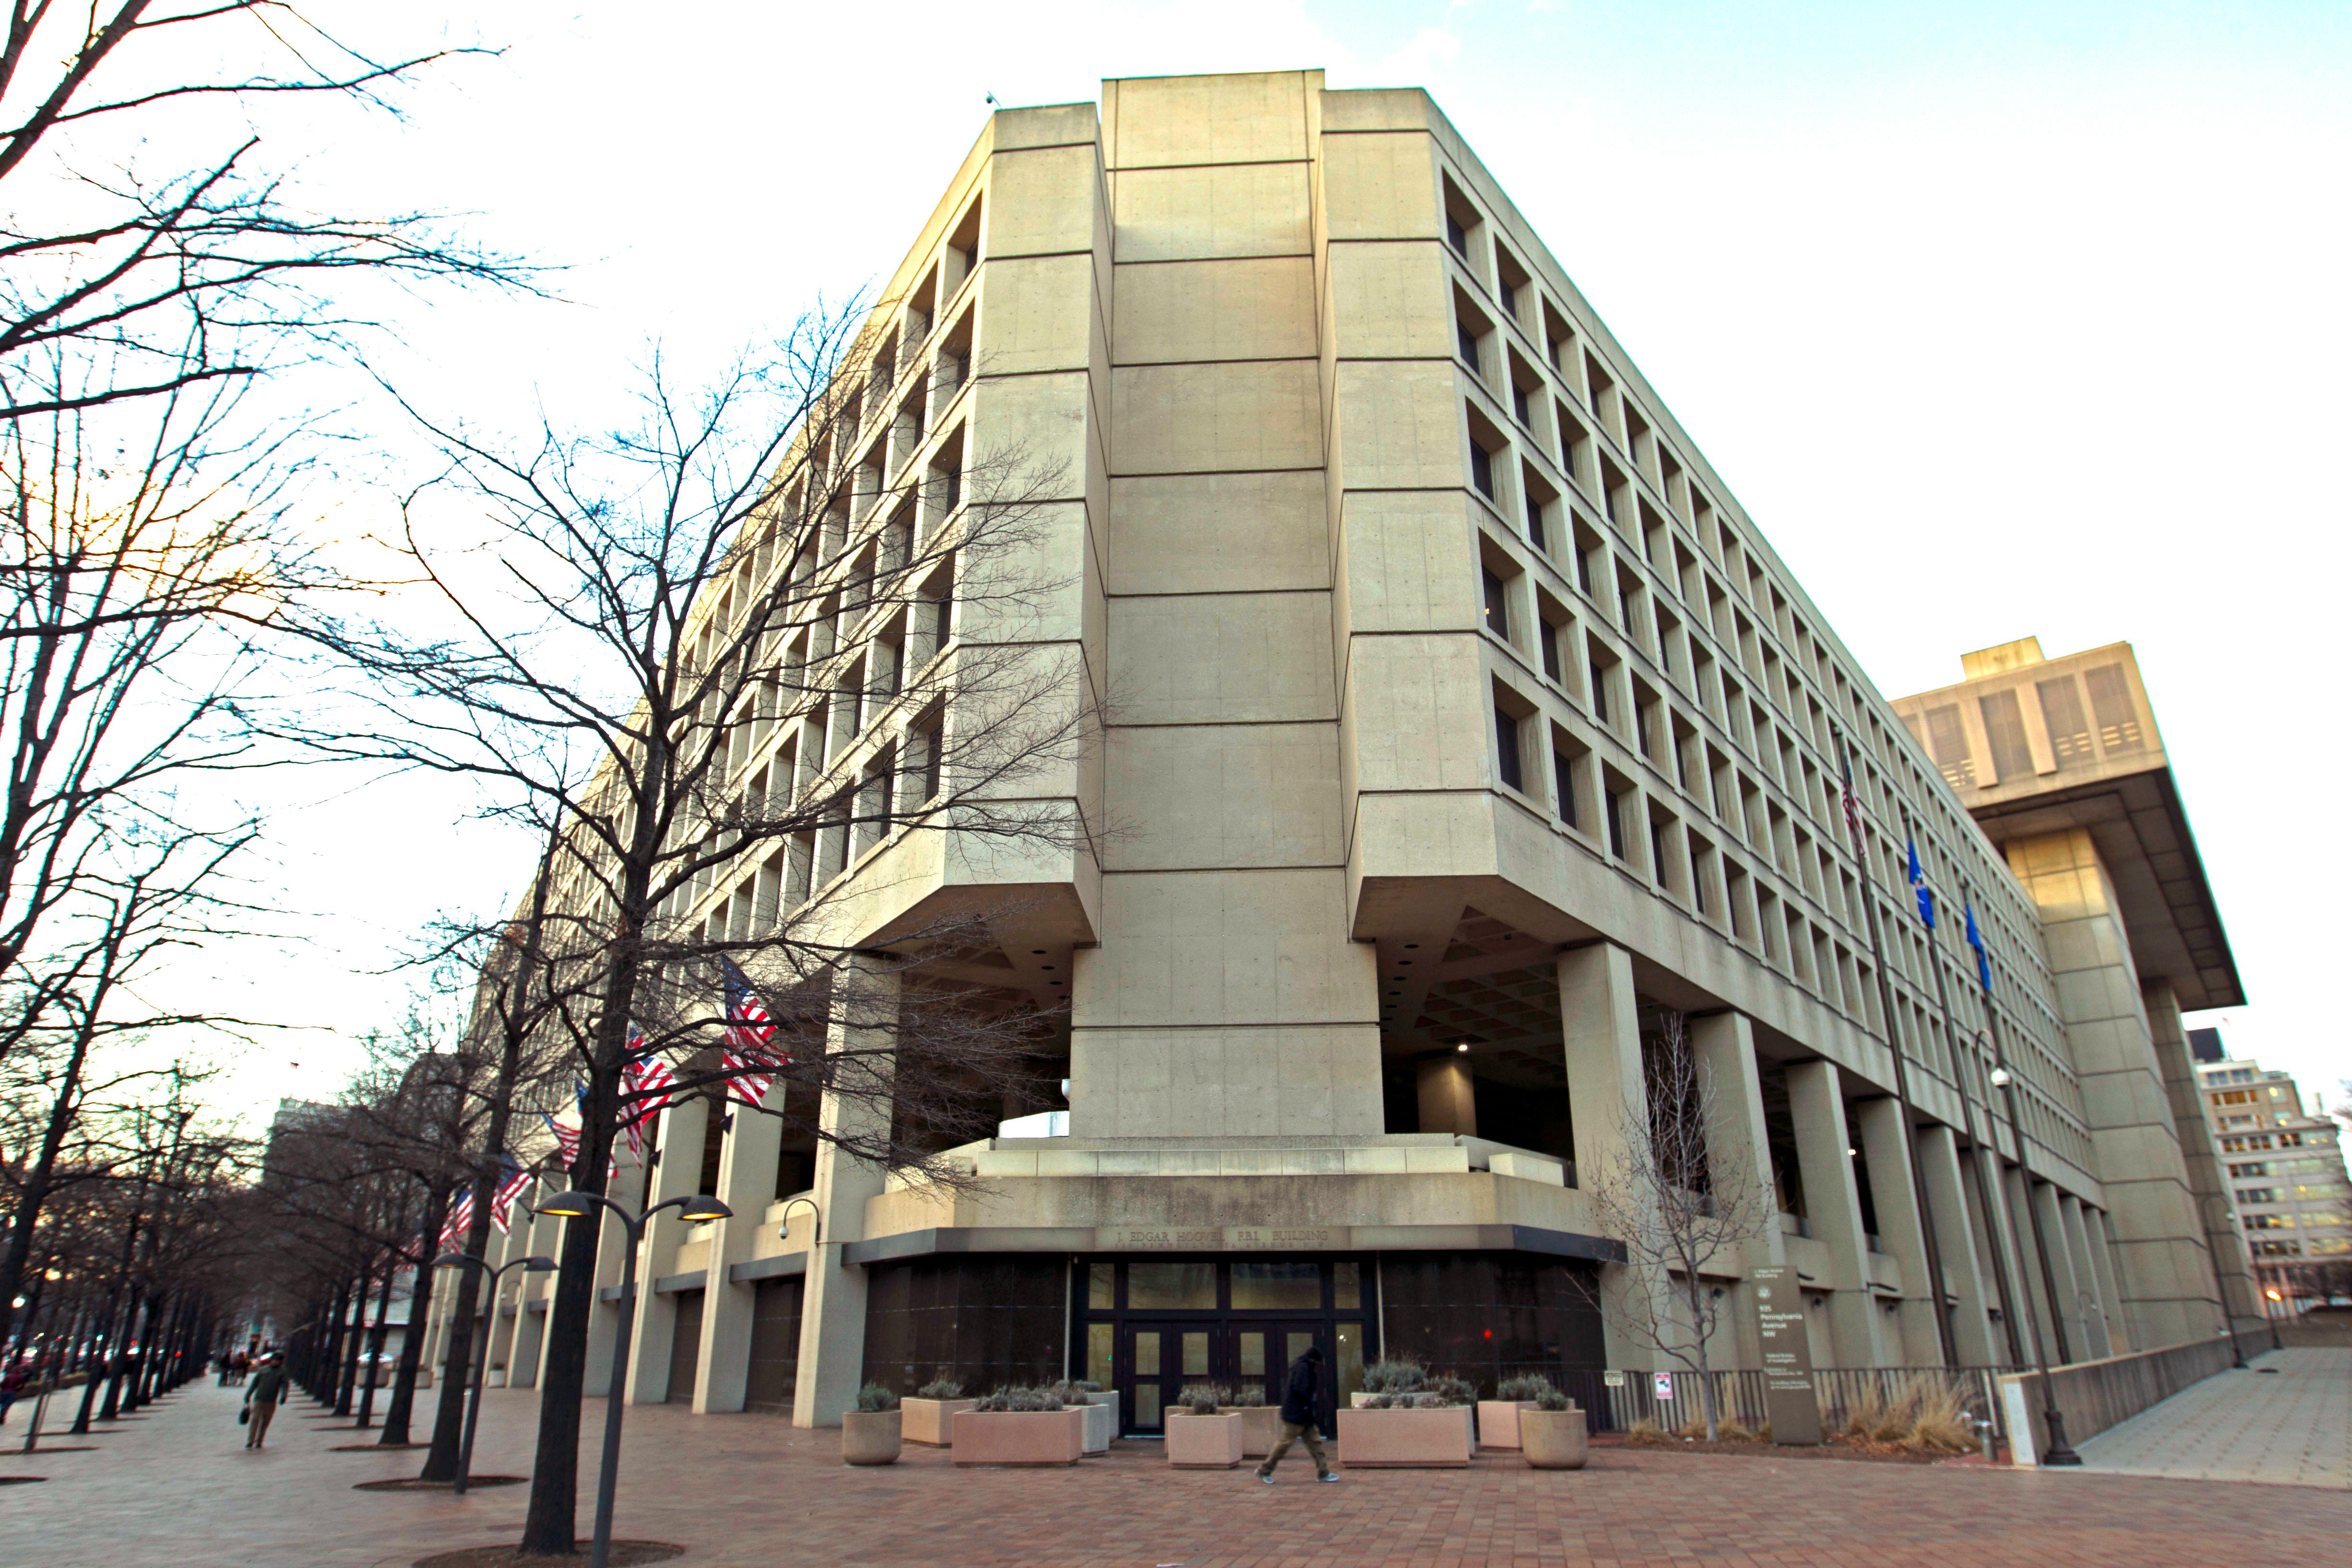 The FBU building in Washington, Friday, Feb. 2, 2018.A new congressional memo alleging FBI surveillance abuse is being used to undermine the legitimacy of special counsel Robert Mueller's Russia investigation. But included in the four-page document are revelations that might complicate the effort.  (AP Photo/Jose Luis Magana)